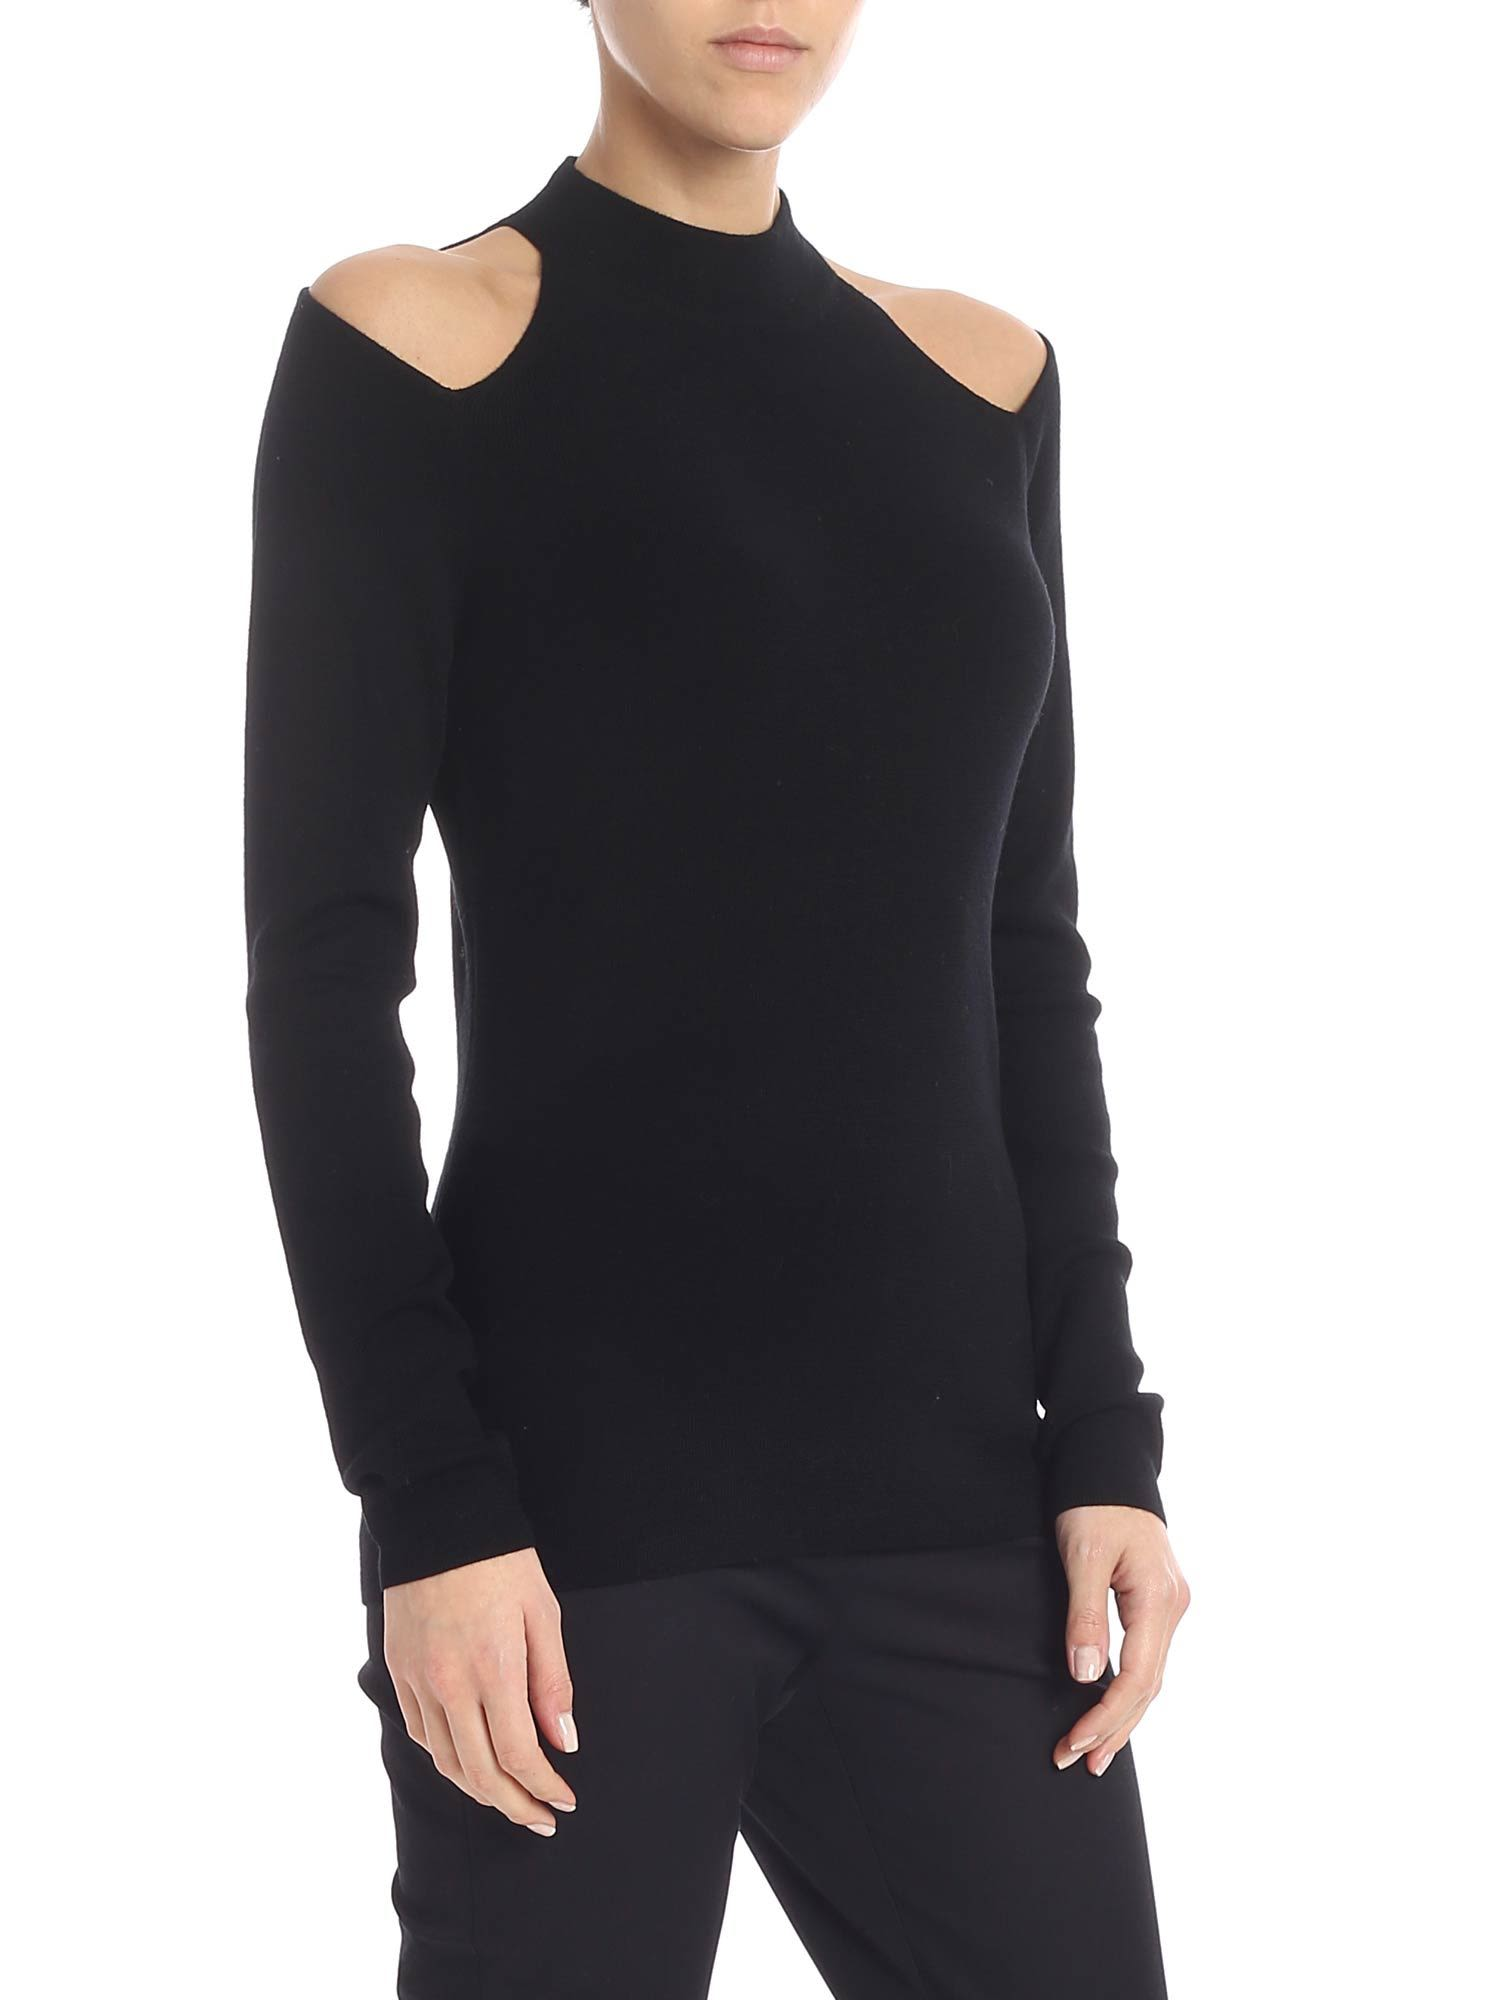 Michael Kors Peekaboo Sweater